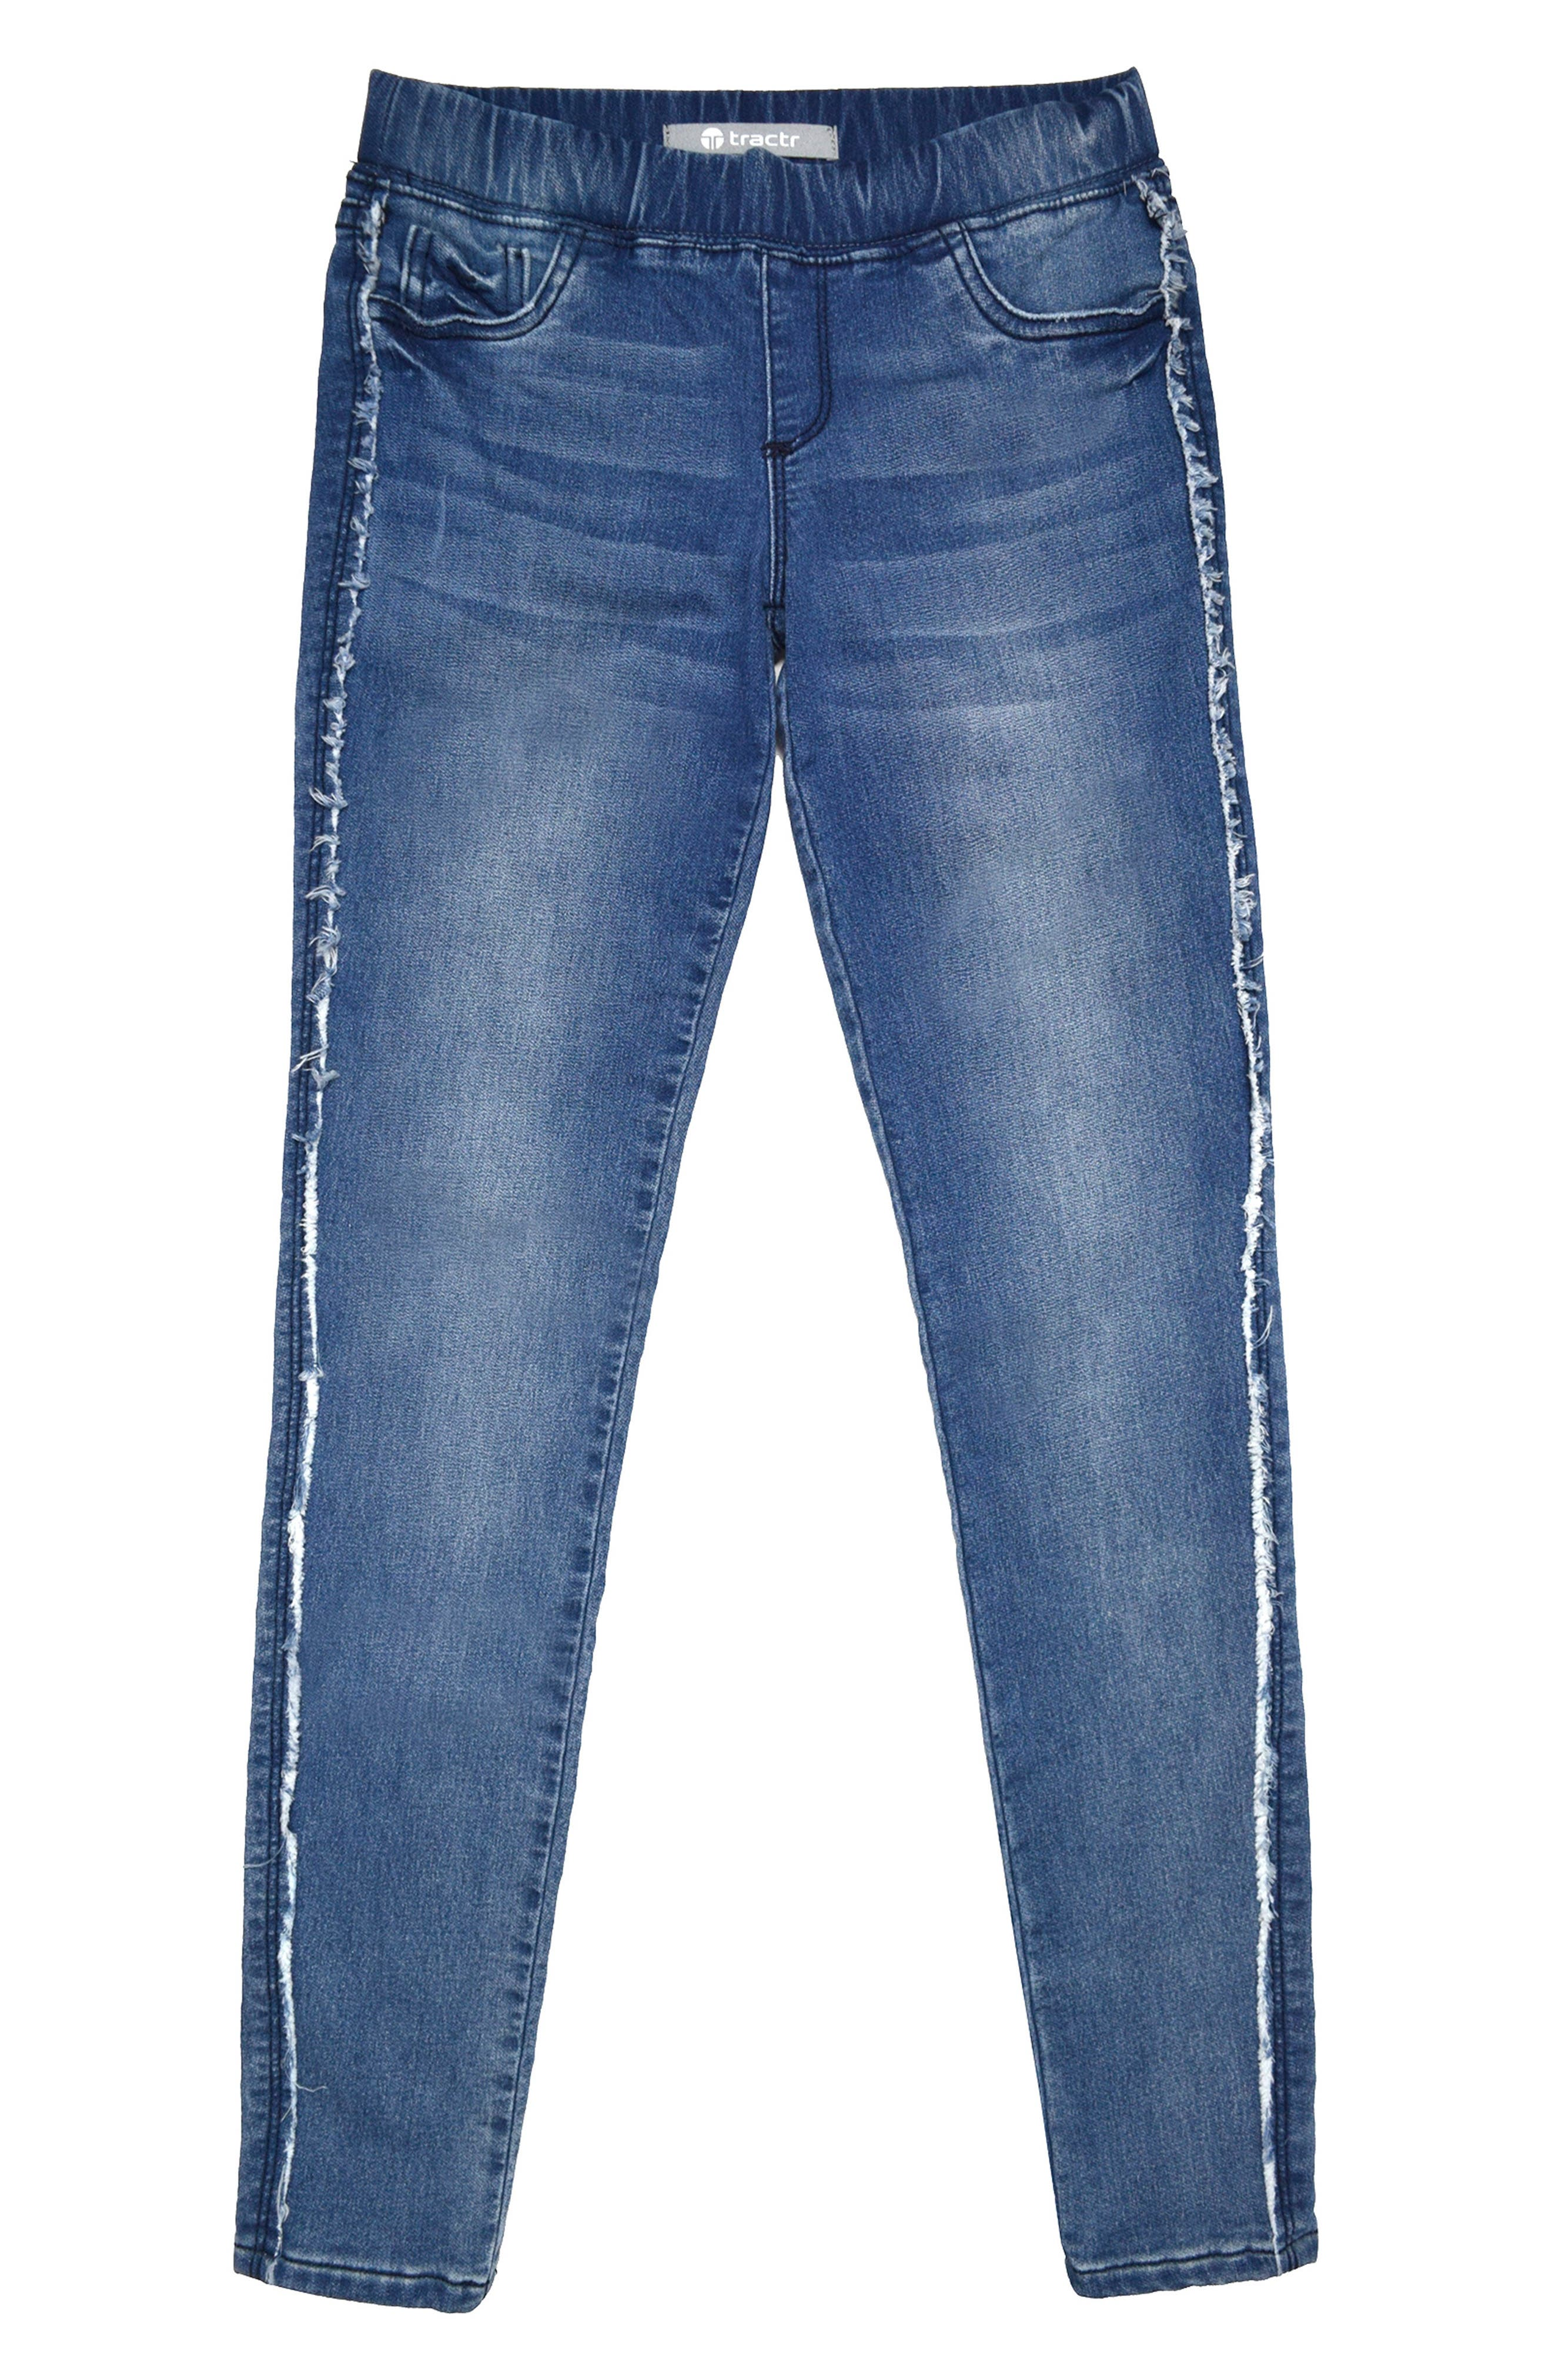 Pull On Skinny Jeans,                             Main thumbnail 1, color,                             Indigo